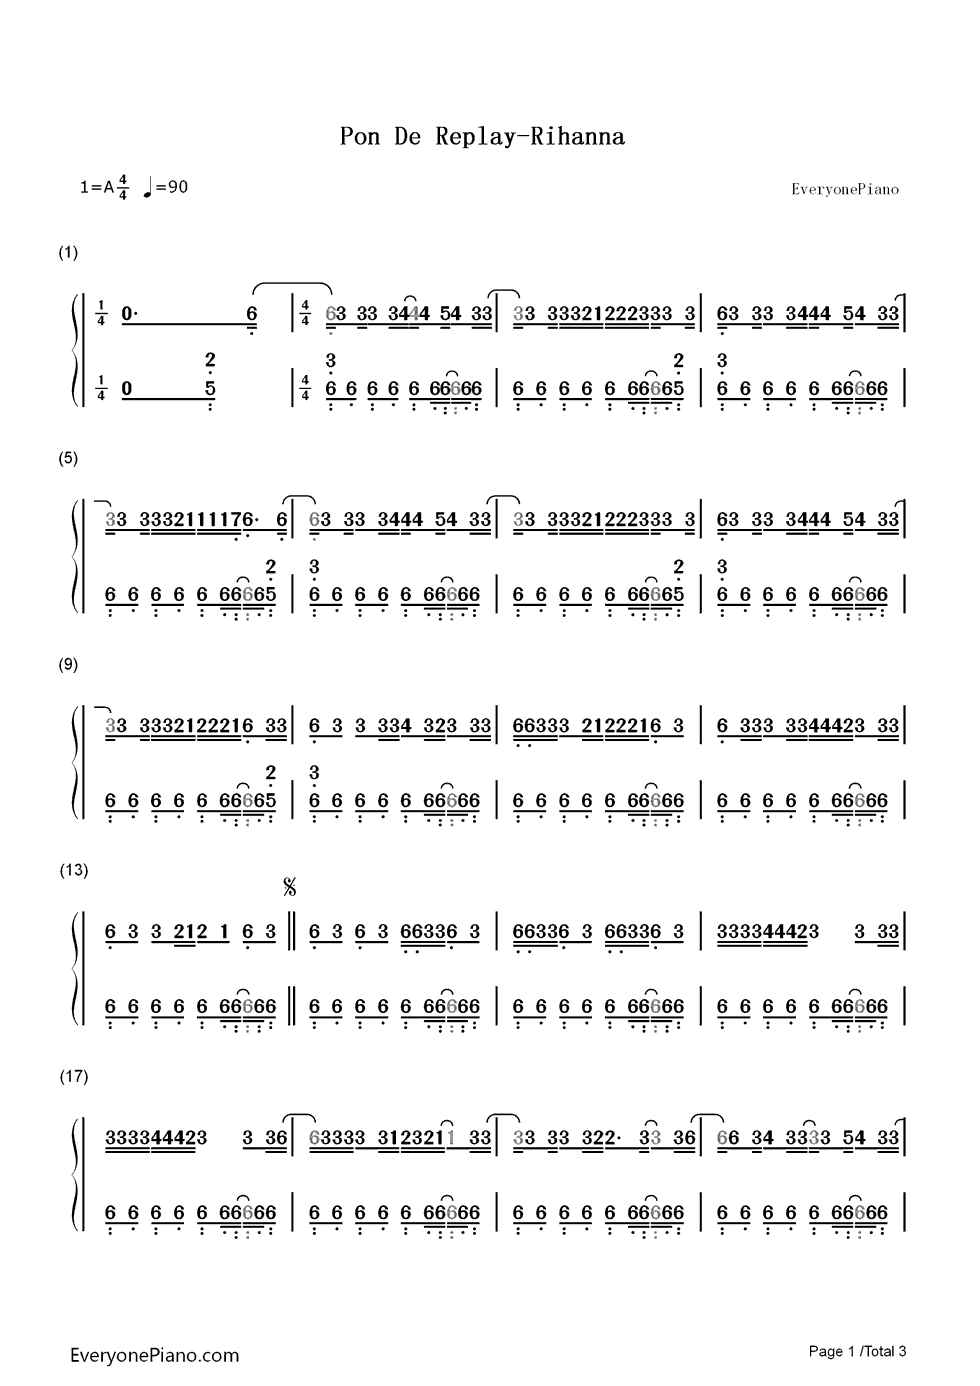 Pon de replay rihanna numbered musical notation preview 1 free listen now print sheet pon de replay rihanna numbered musical notation preview 1 hexwebz Image collections